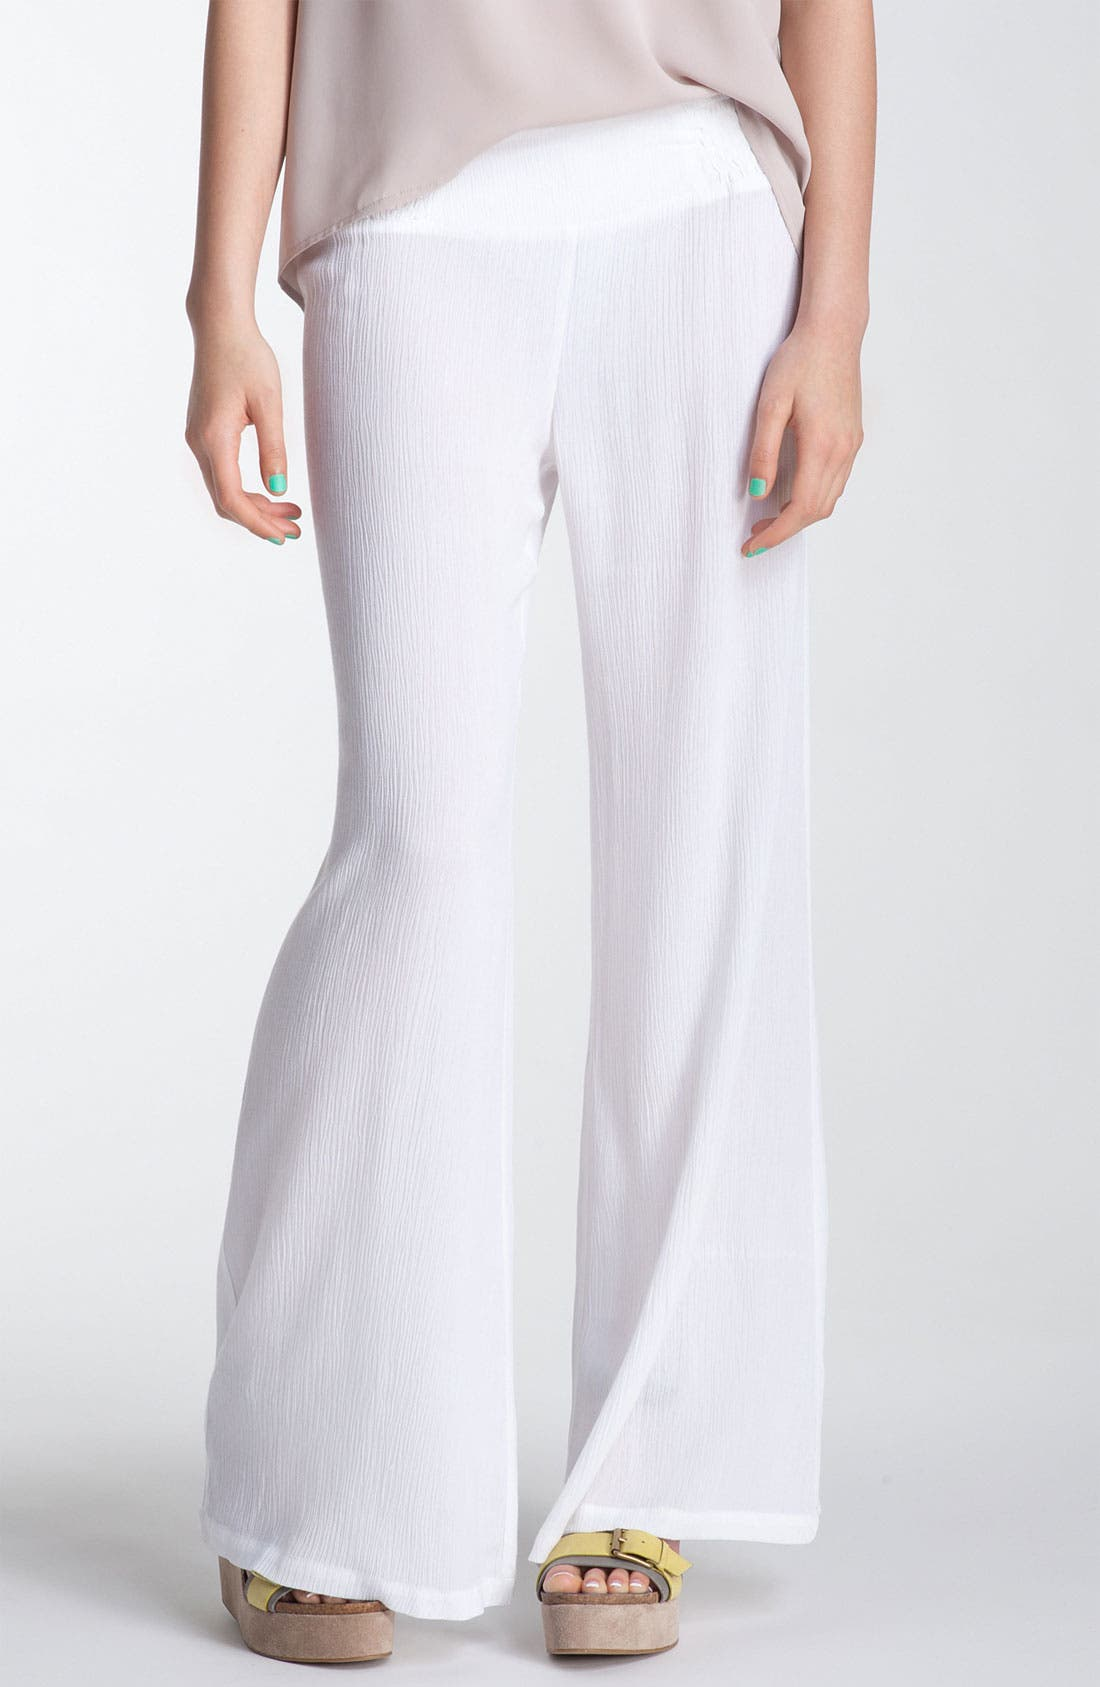 Alternate Image 1 Selected - Mimi Chica Crinkled Gauze Wide Leg Pants (Juniors)